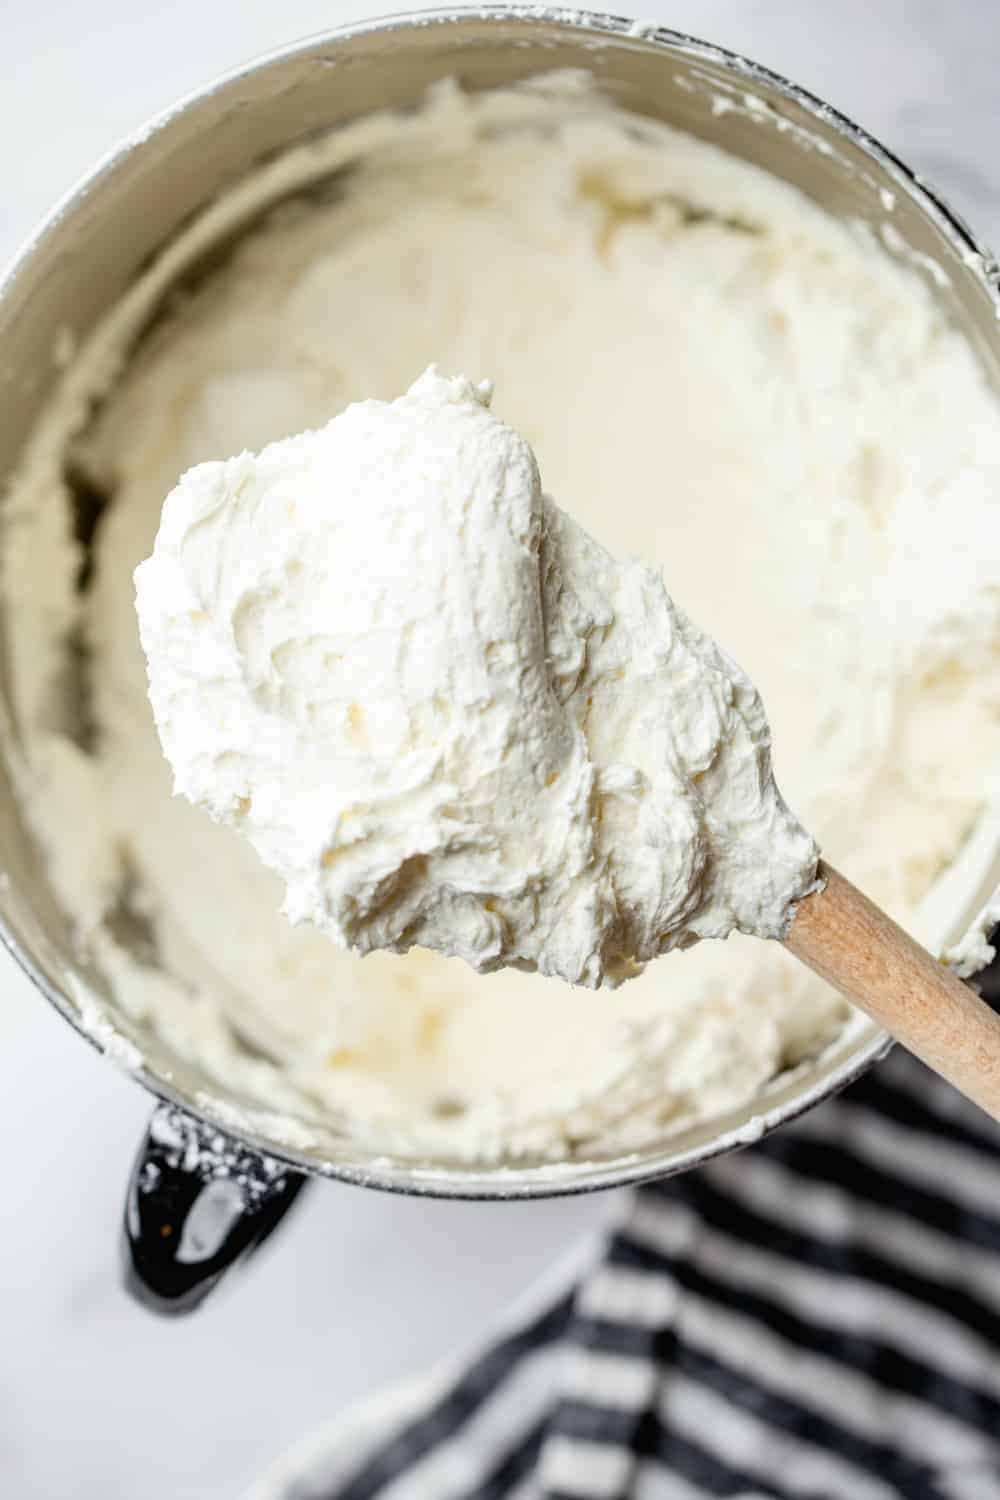 Fluffy frosting is so easy to make at home with this Homemade Buttercream Frosting recipe